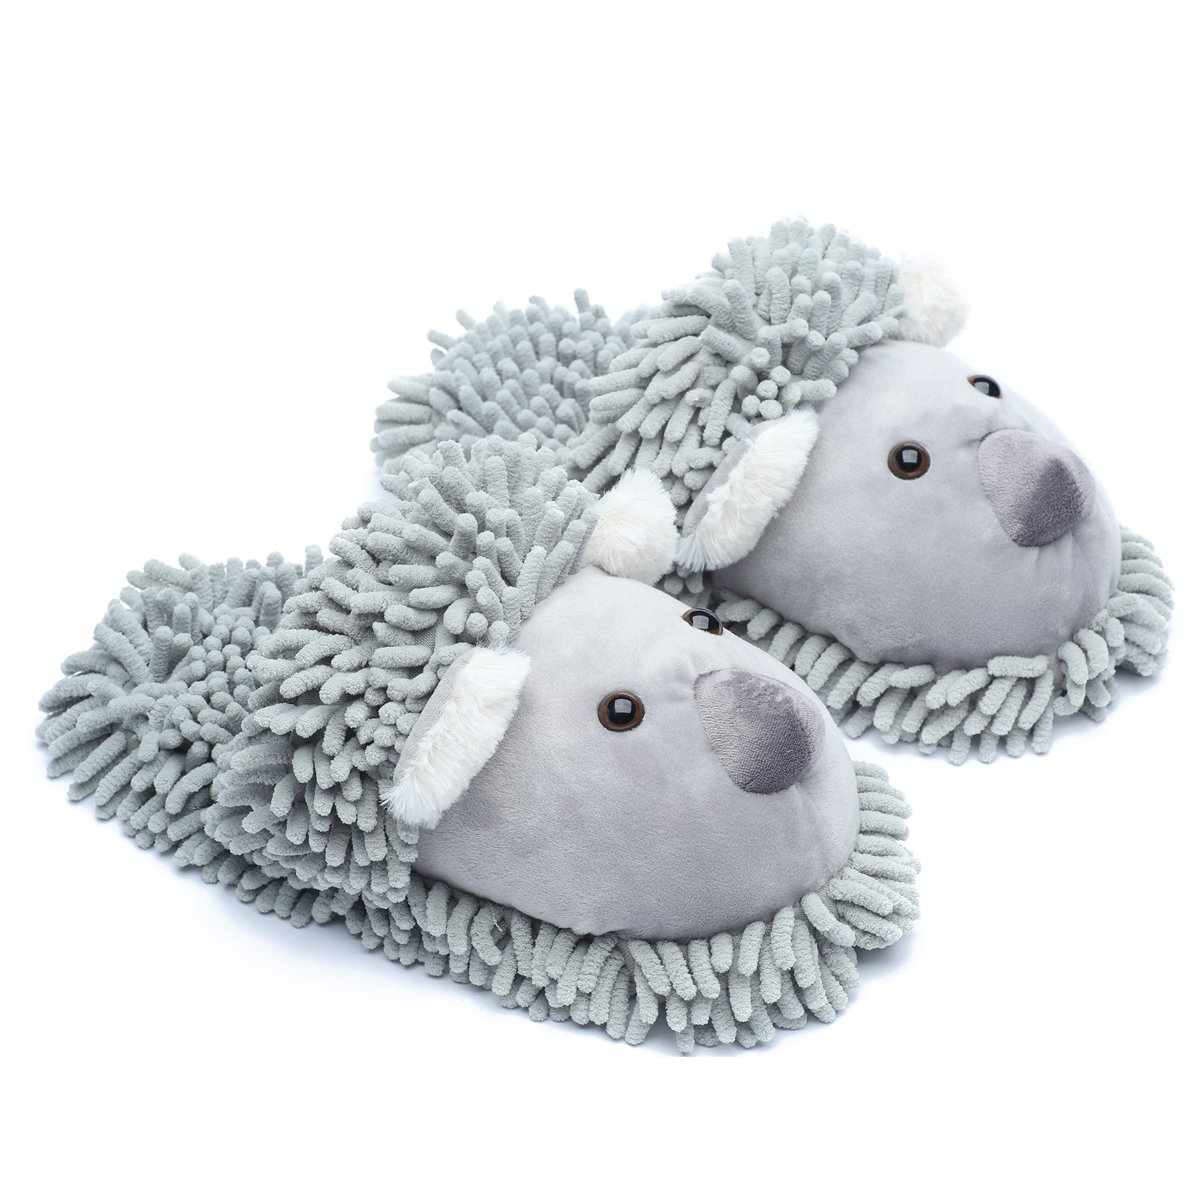 Ofoot Winter Warm Plush Anti-slip Indoor Animal Slippers for Women and Men (M/L 8-10 B(M) US, Grey(Koala))